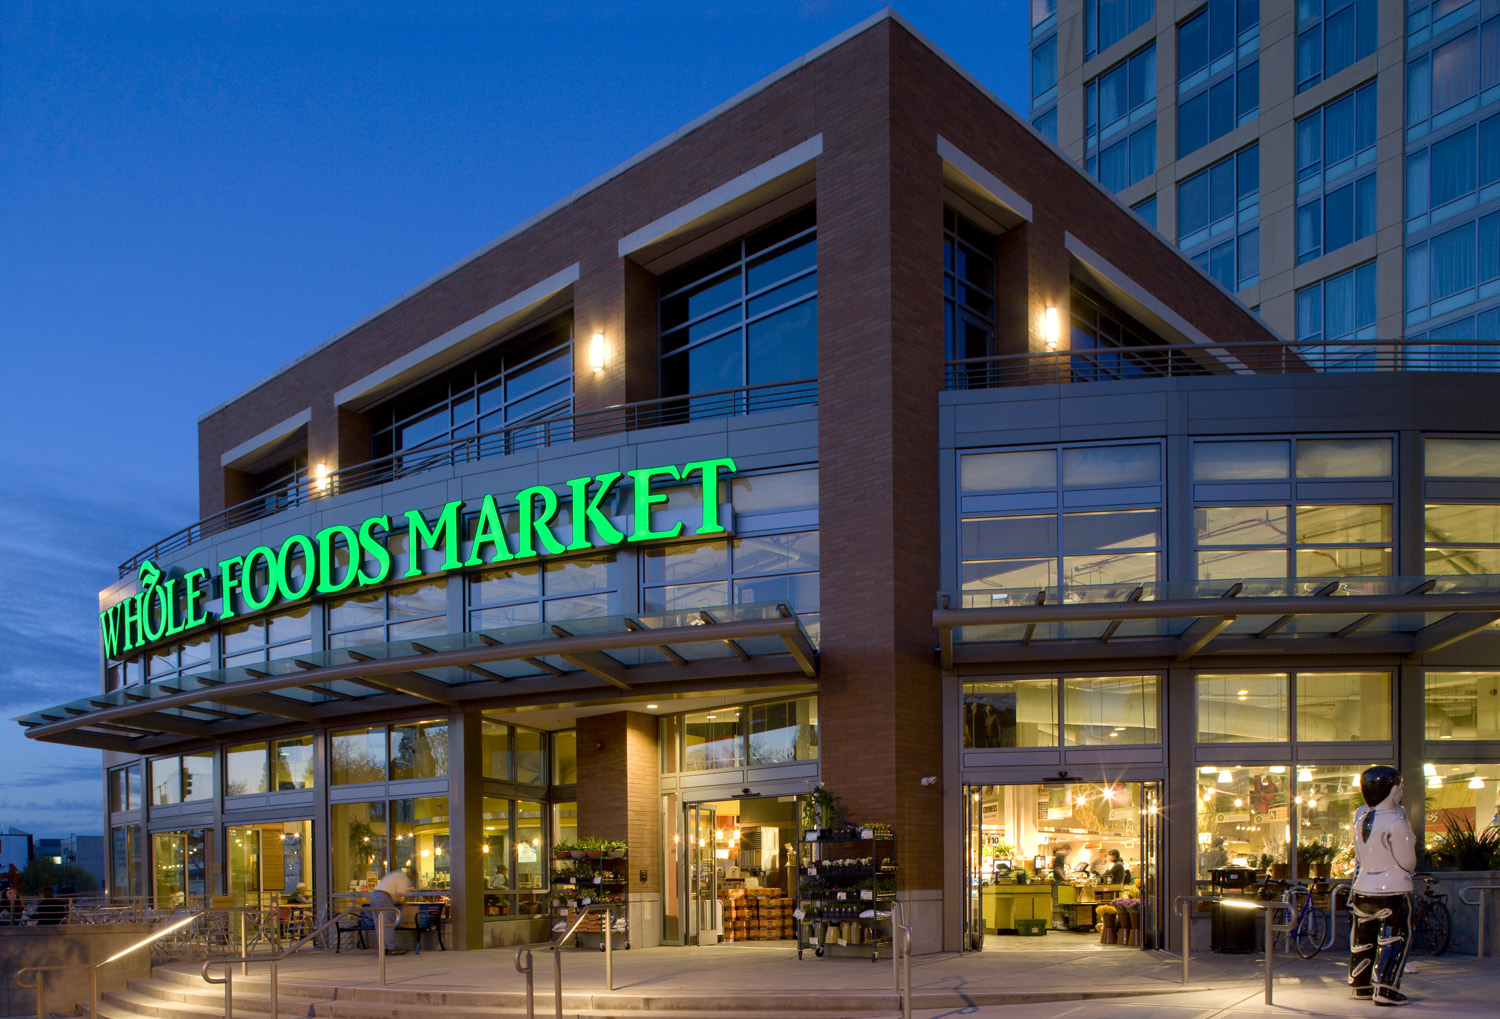 whole foods strategy management Free research that covers introduction company profile whole foods market, inc is a publicly listed company on nasdaq it was formulated in 1980 whole foods market.